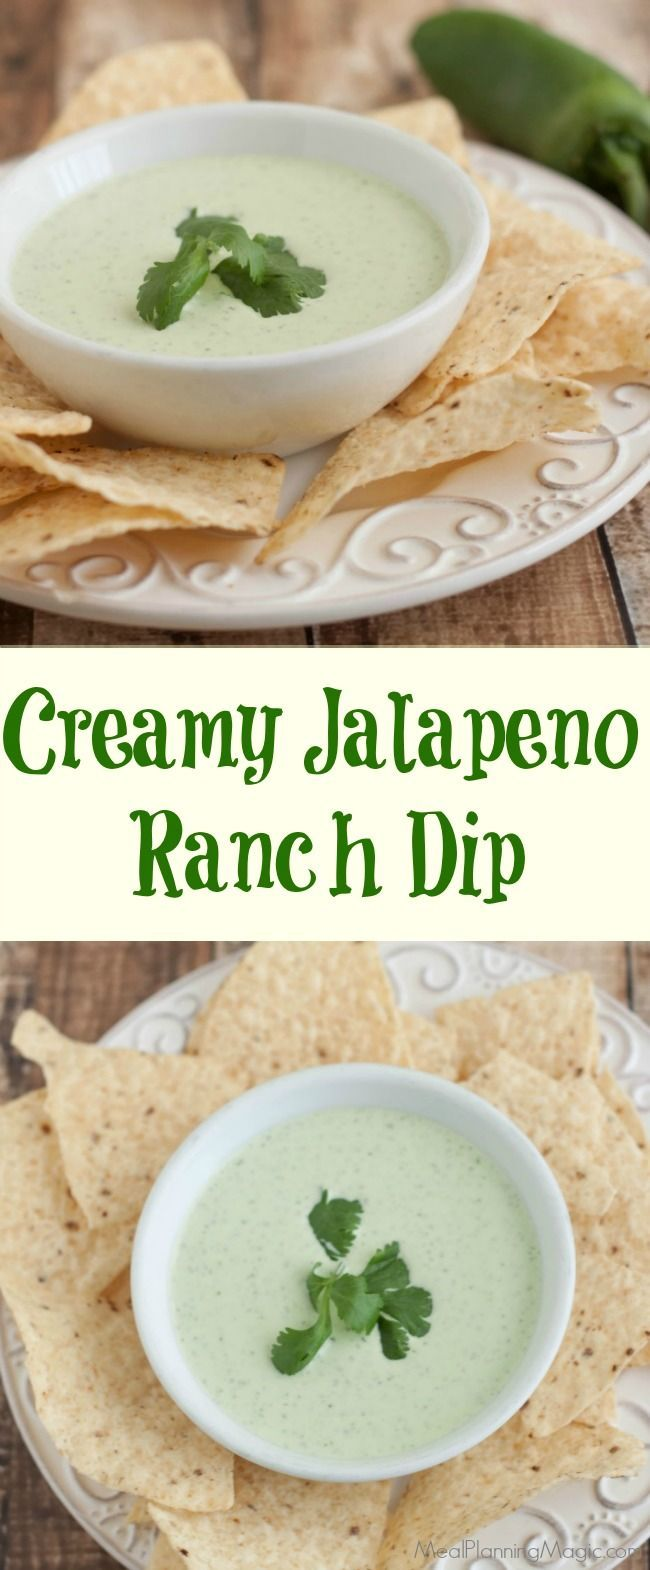 This Creamy Jalapeno Ranch Dip is super simple to blend up and a HUGE hit with everyone. You may want to make a double batch! Recipe at http://MealPlanningMagic.com http://www.mealplanningmagic.com/creamy-jalapeno-ranch-dip/